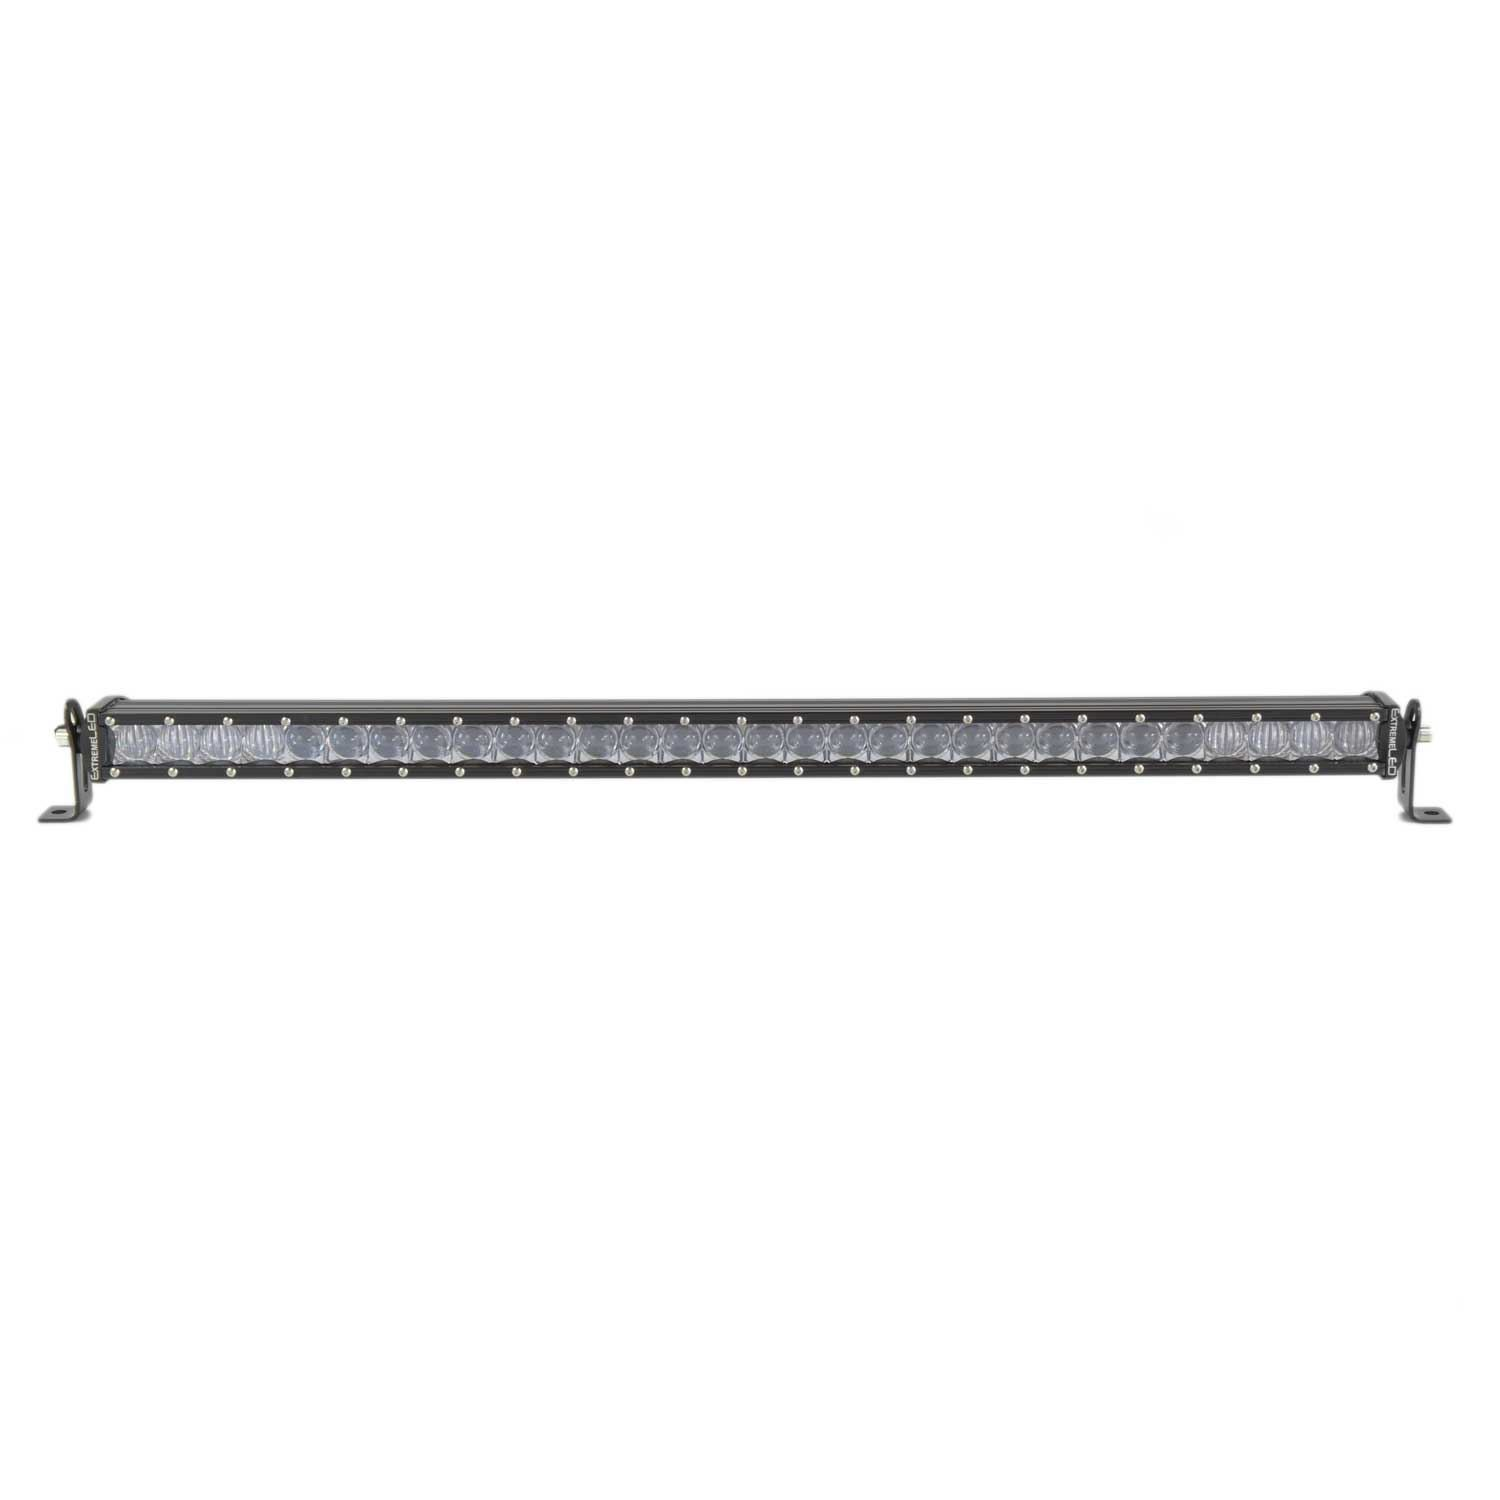 "Extreme 5D 20"" Single Row LED Light Bar"